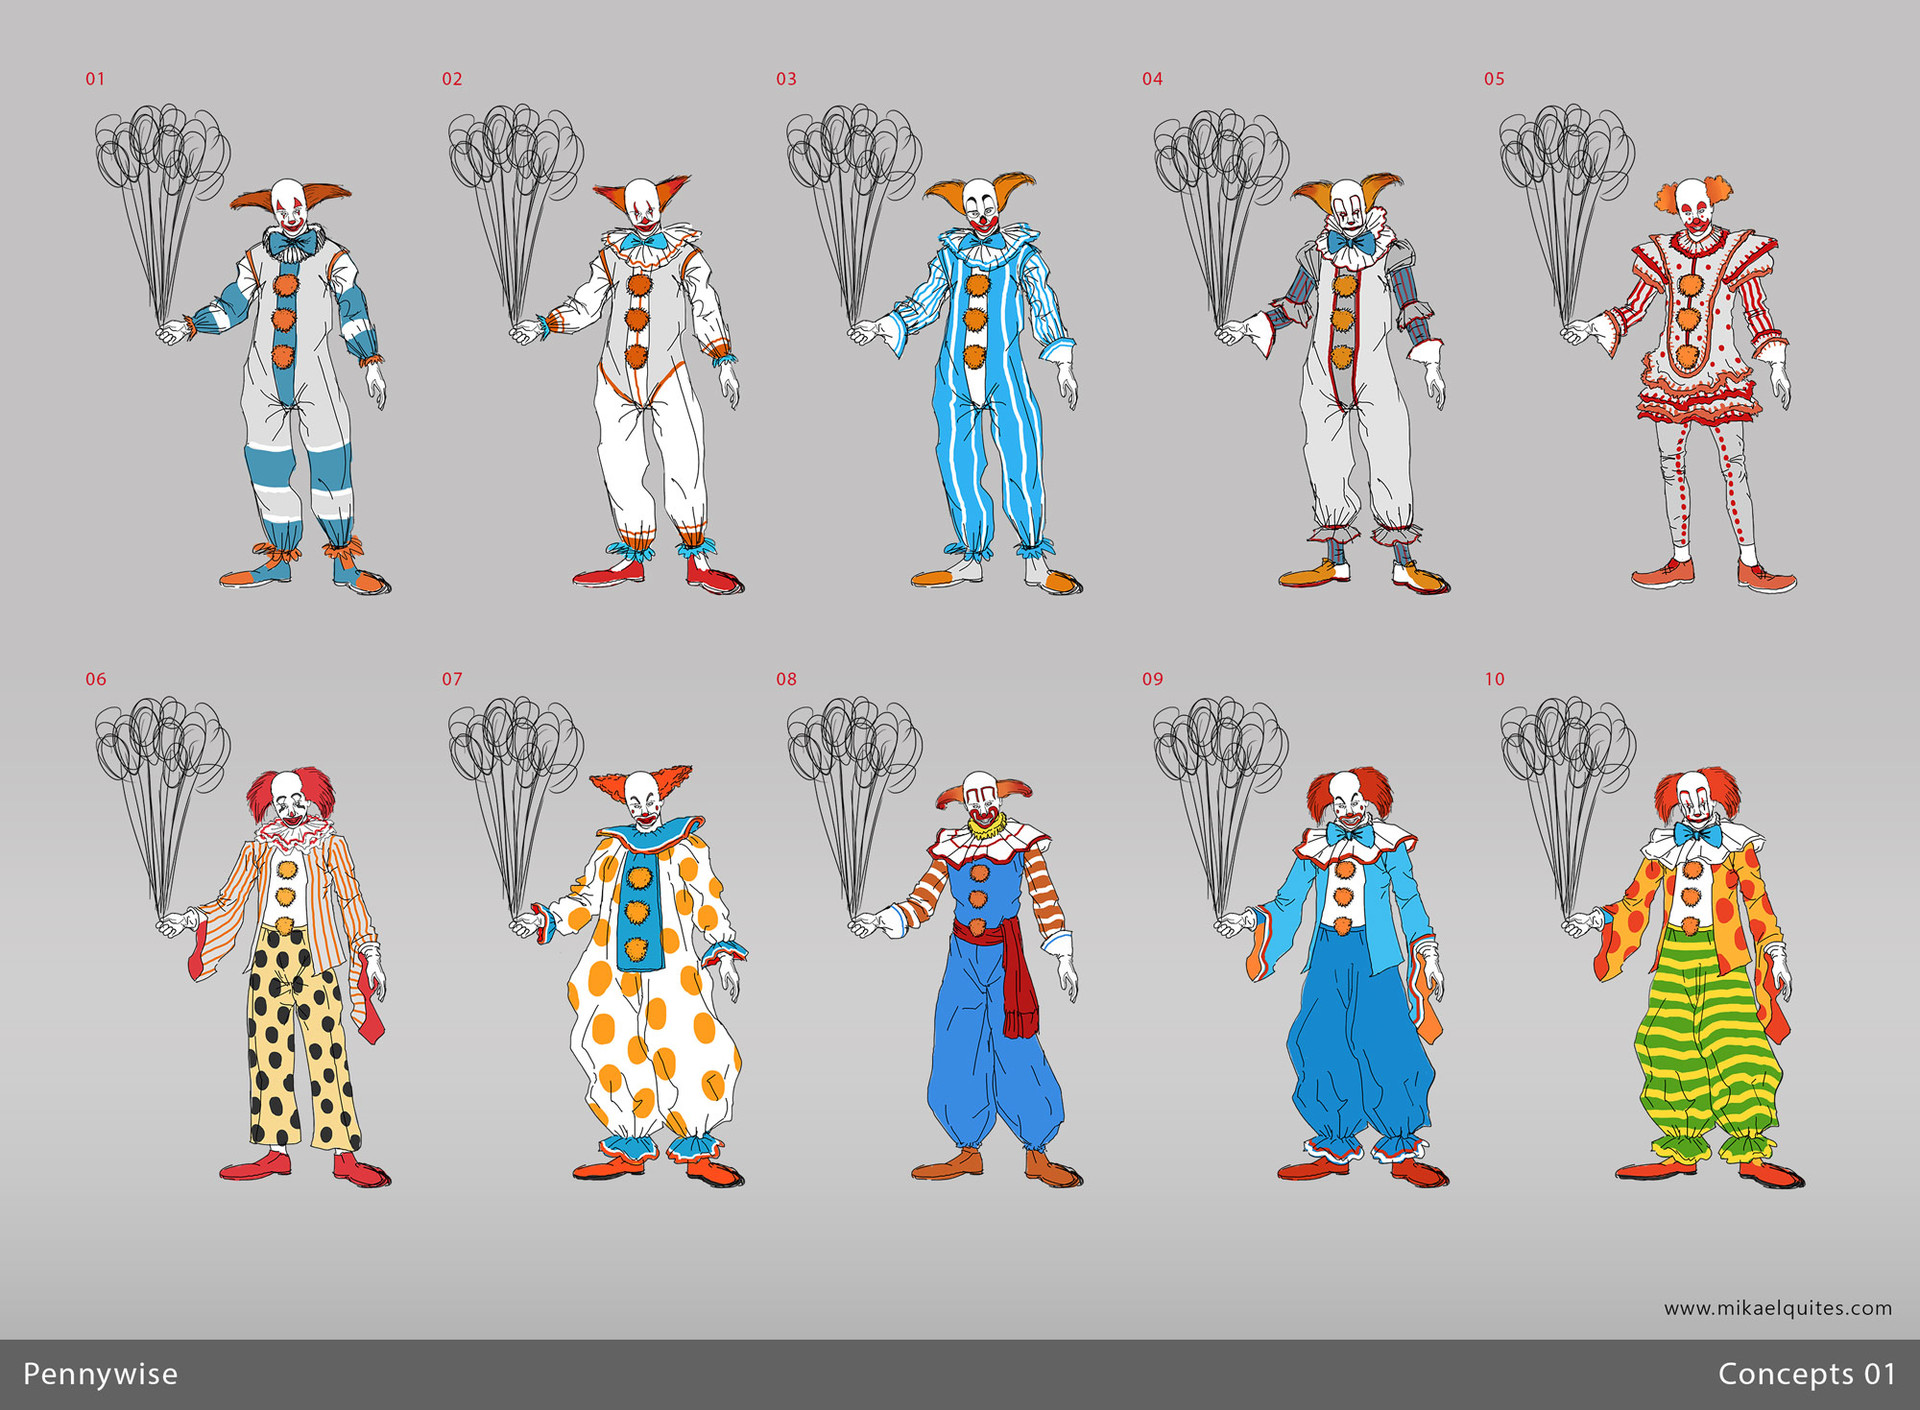 Mikael quites pennywise concepts all1